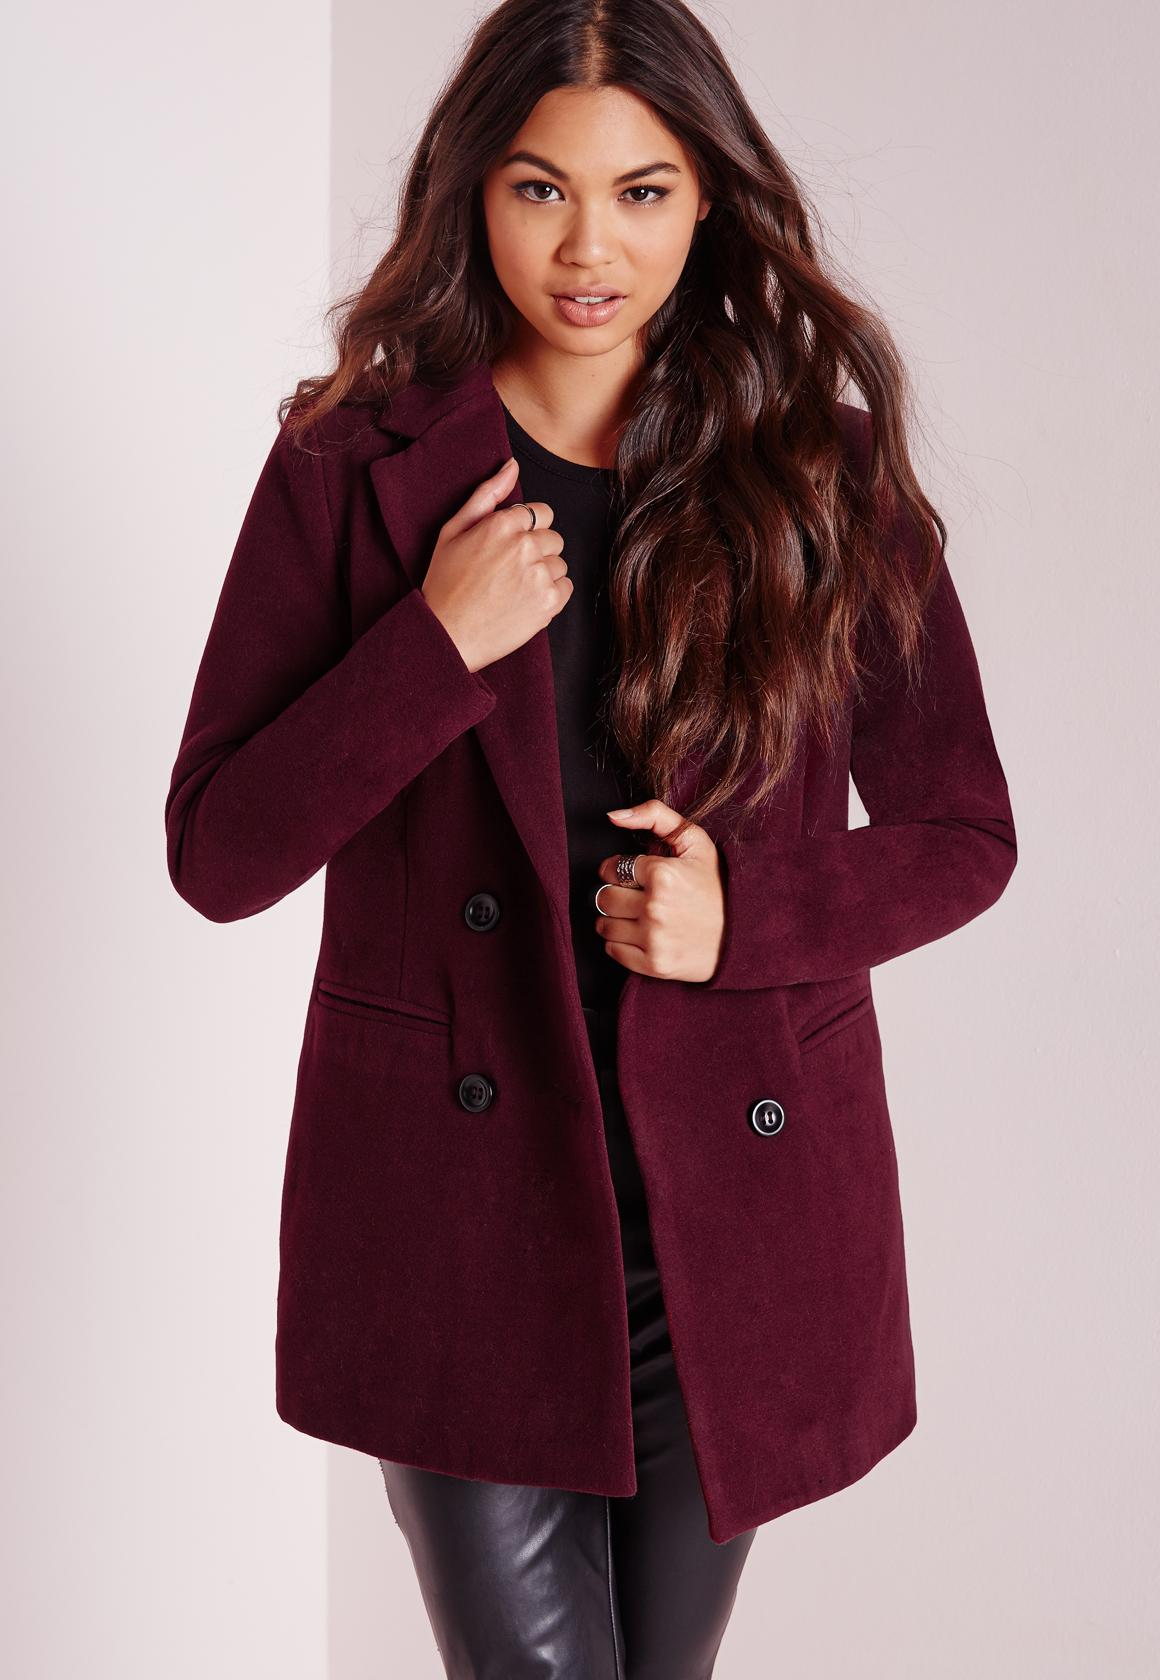 Double Breasted Tailored Wool Coat Burgundy